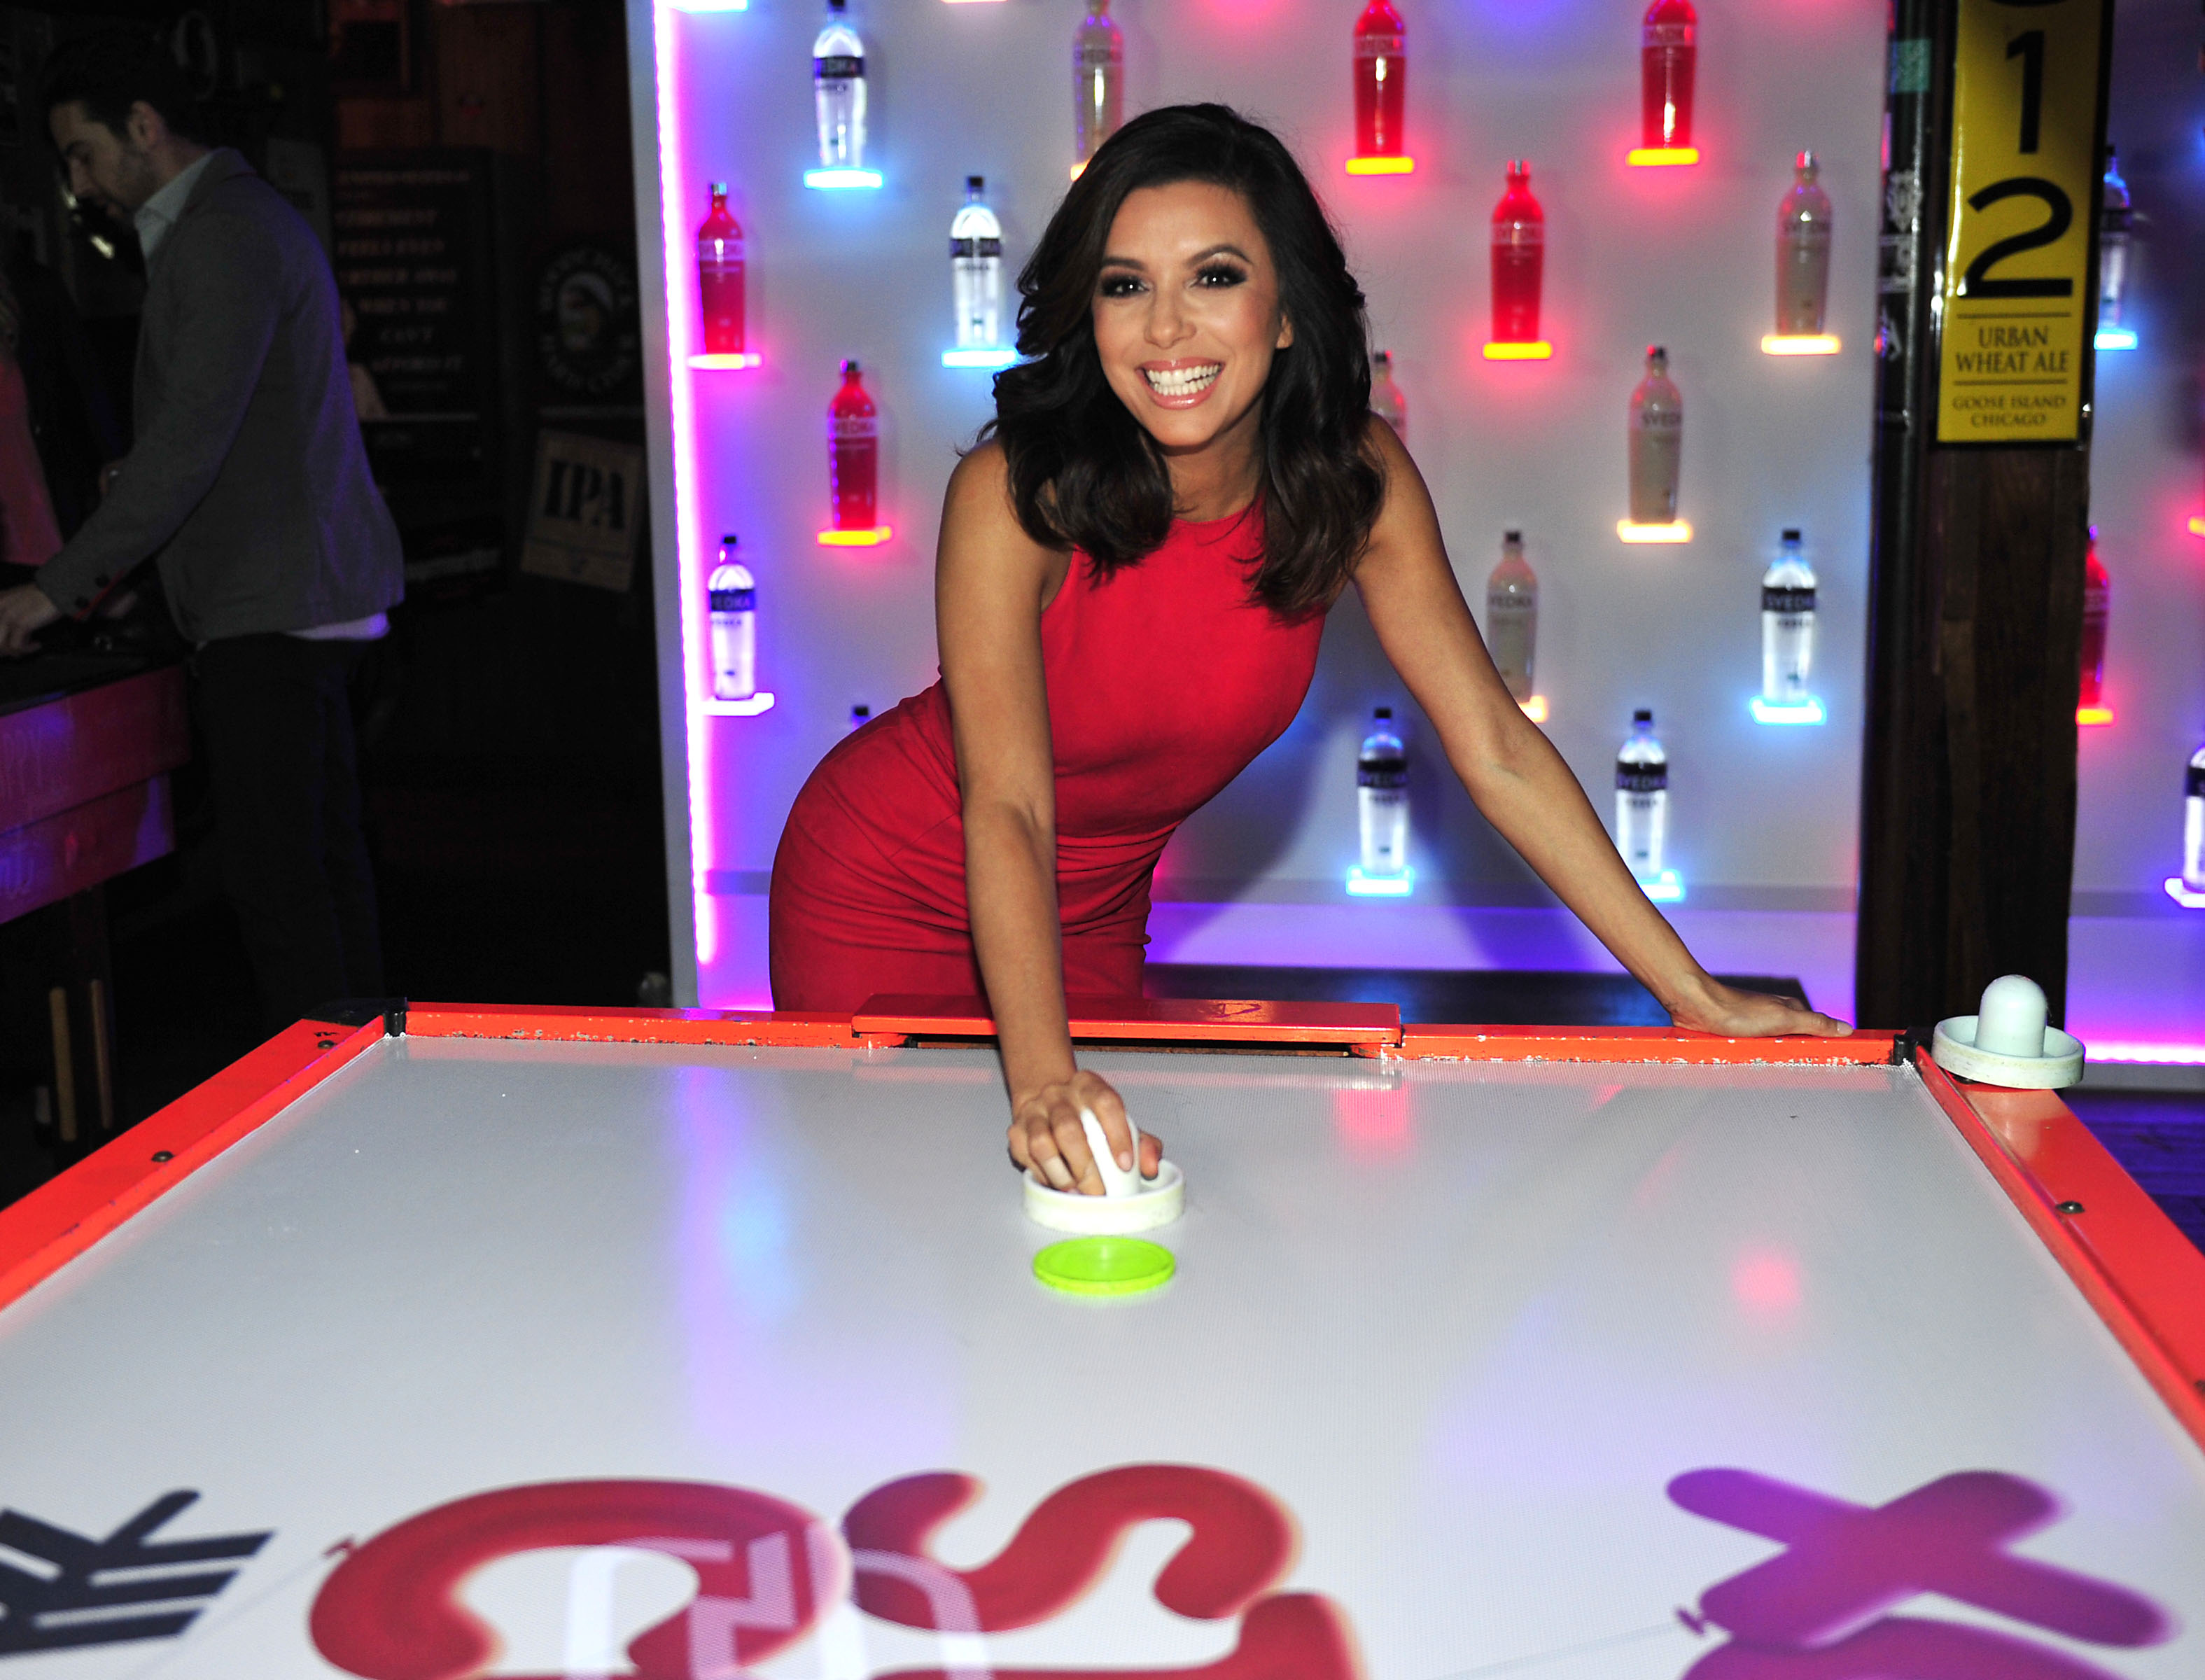 Eva Longoria Playing Air Hockey